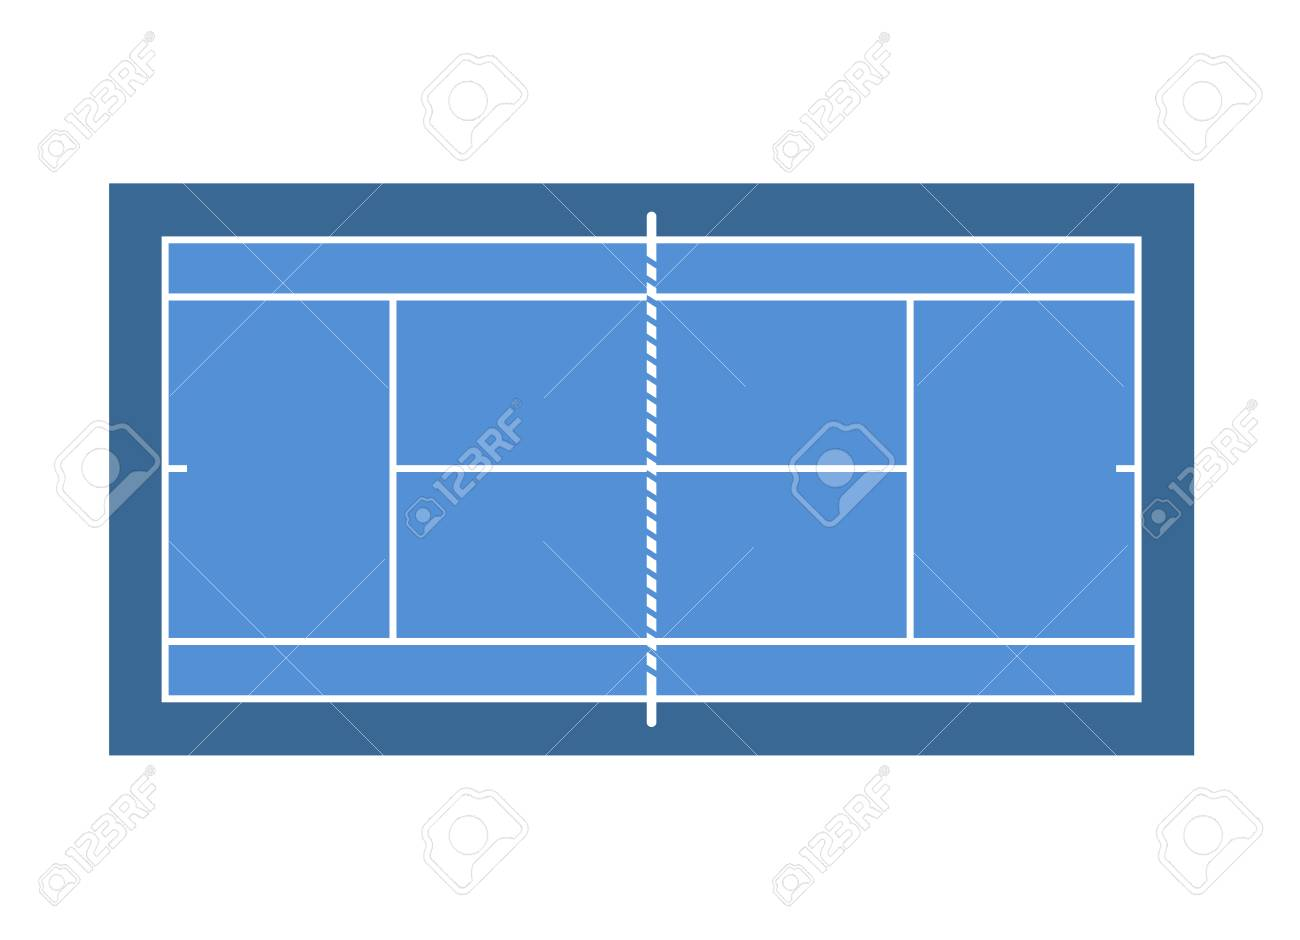 A Blue Tennis Court Design Isolated On Plain Background Royalty Free Cliparts Vectors And Stock Illustration Image 97027036